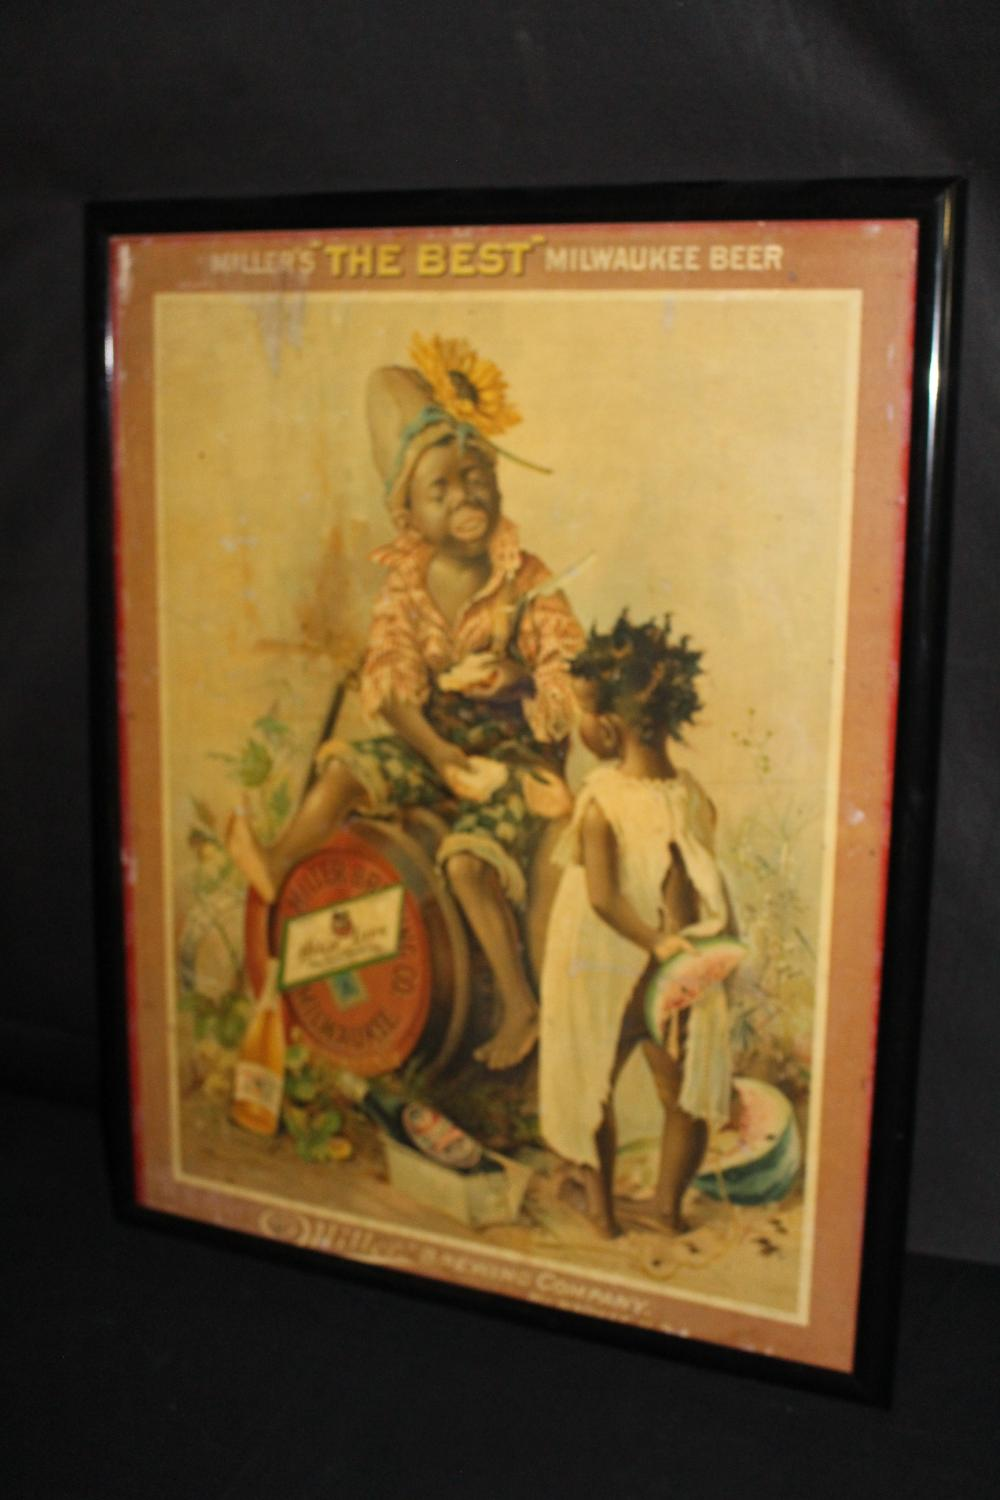 PRE PRO THE FRED MILLER BREWING LITHO SIGN